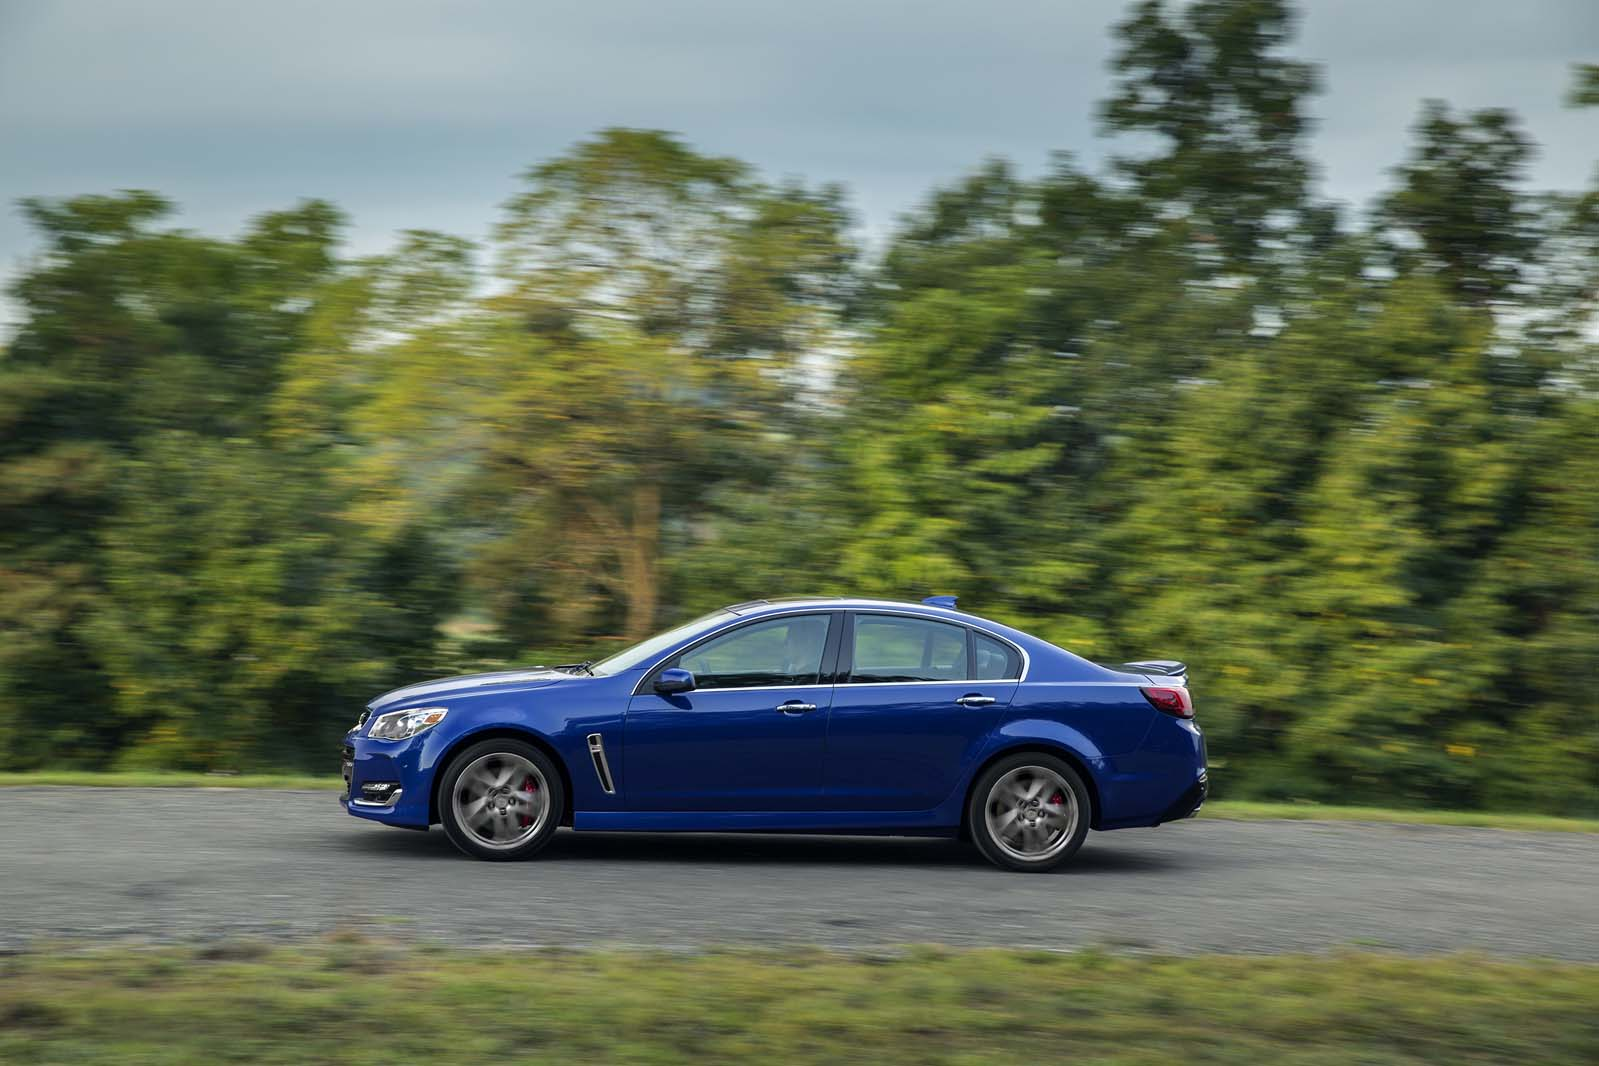 2016 Chevrolet Ss Chevy Review Ratings Specs Prices And Photos The Car Connection